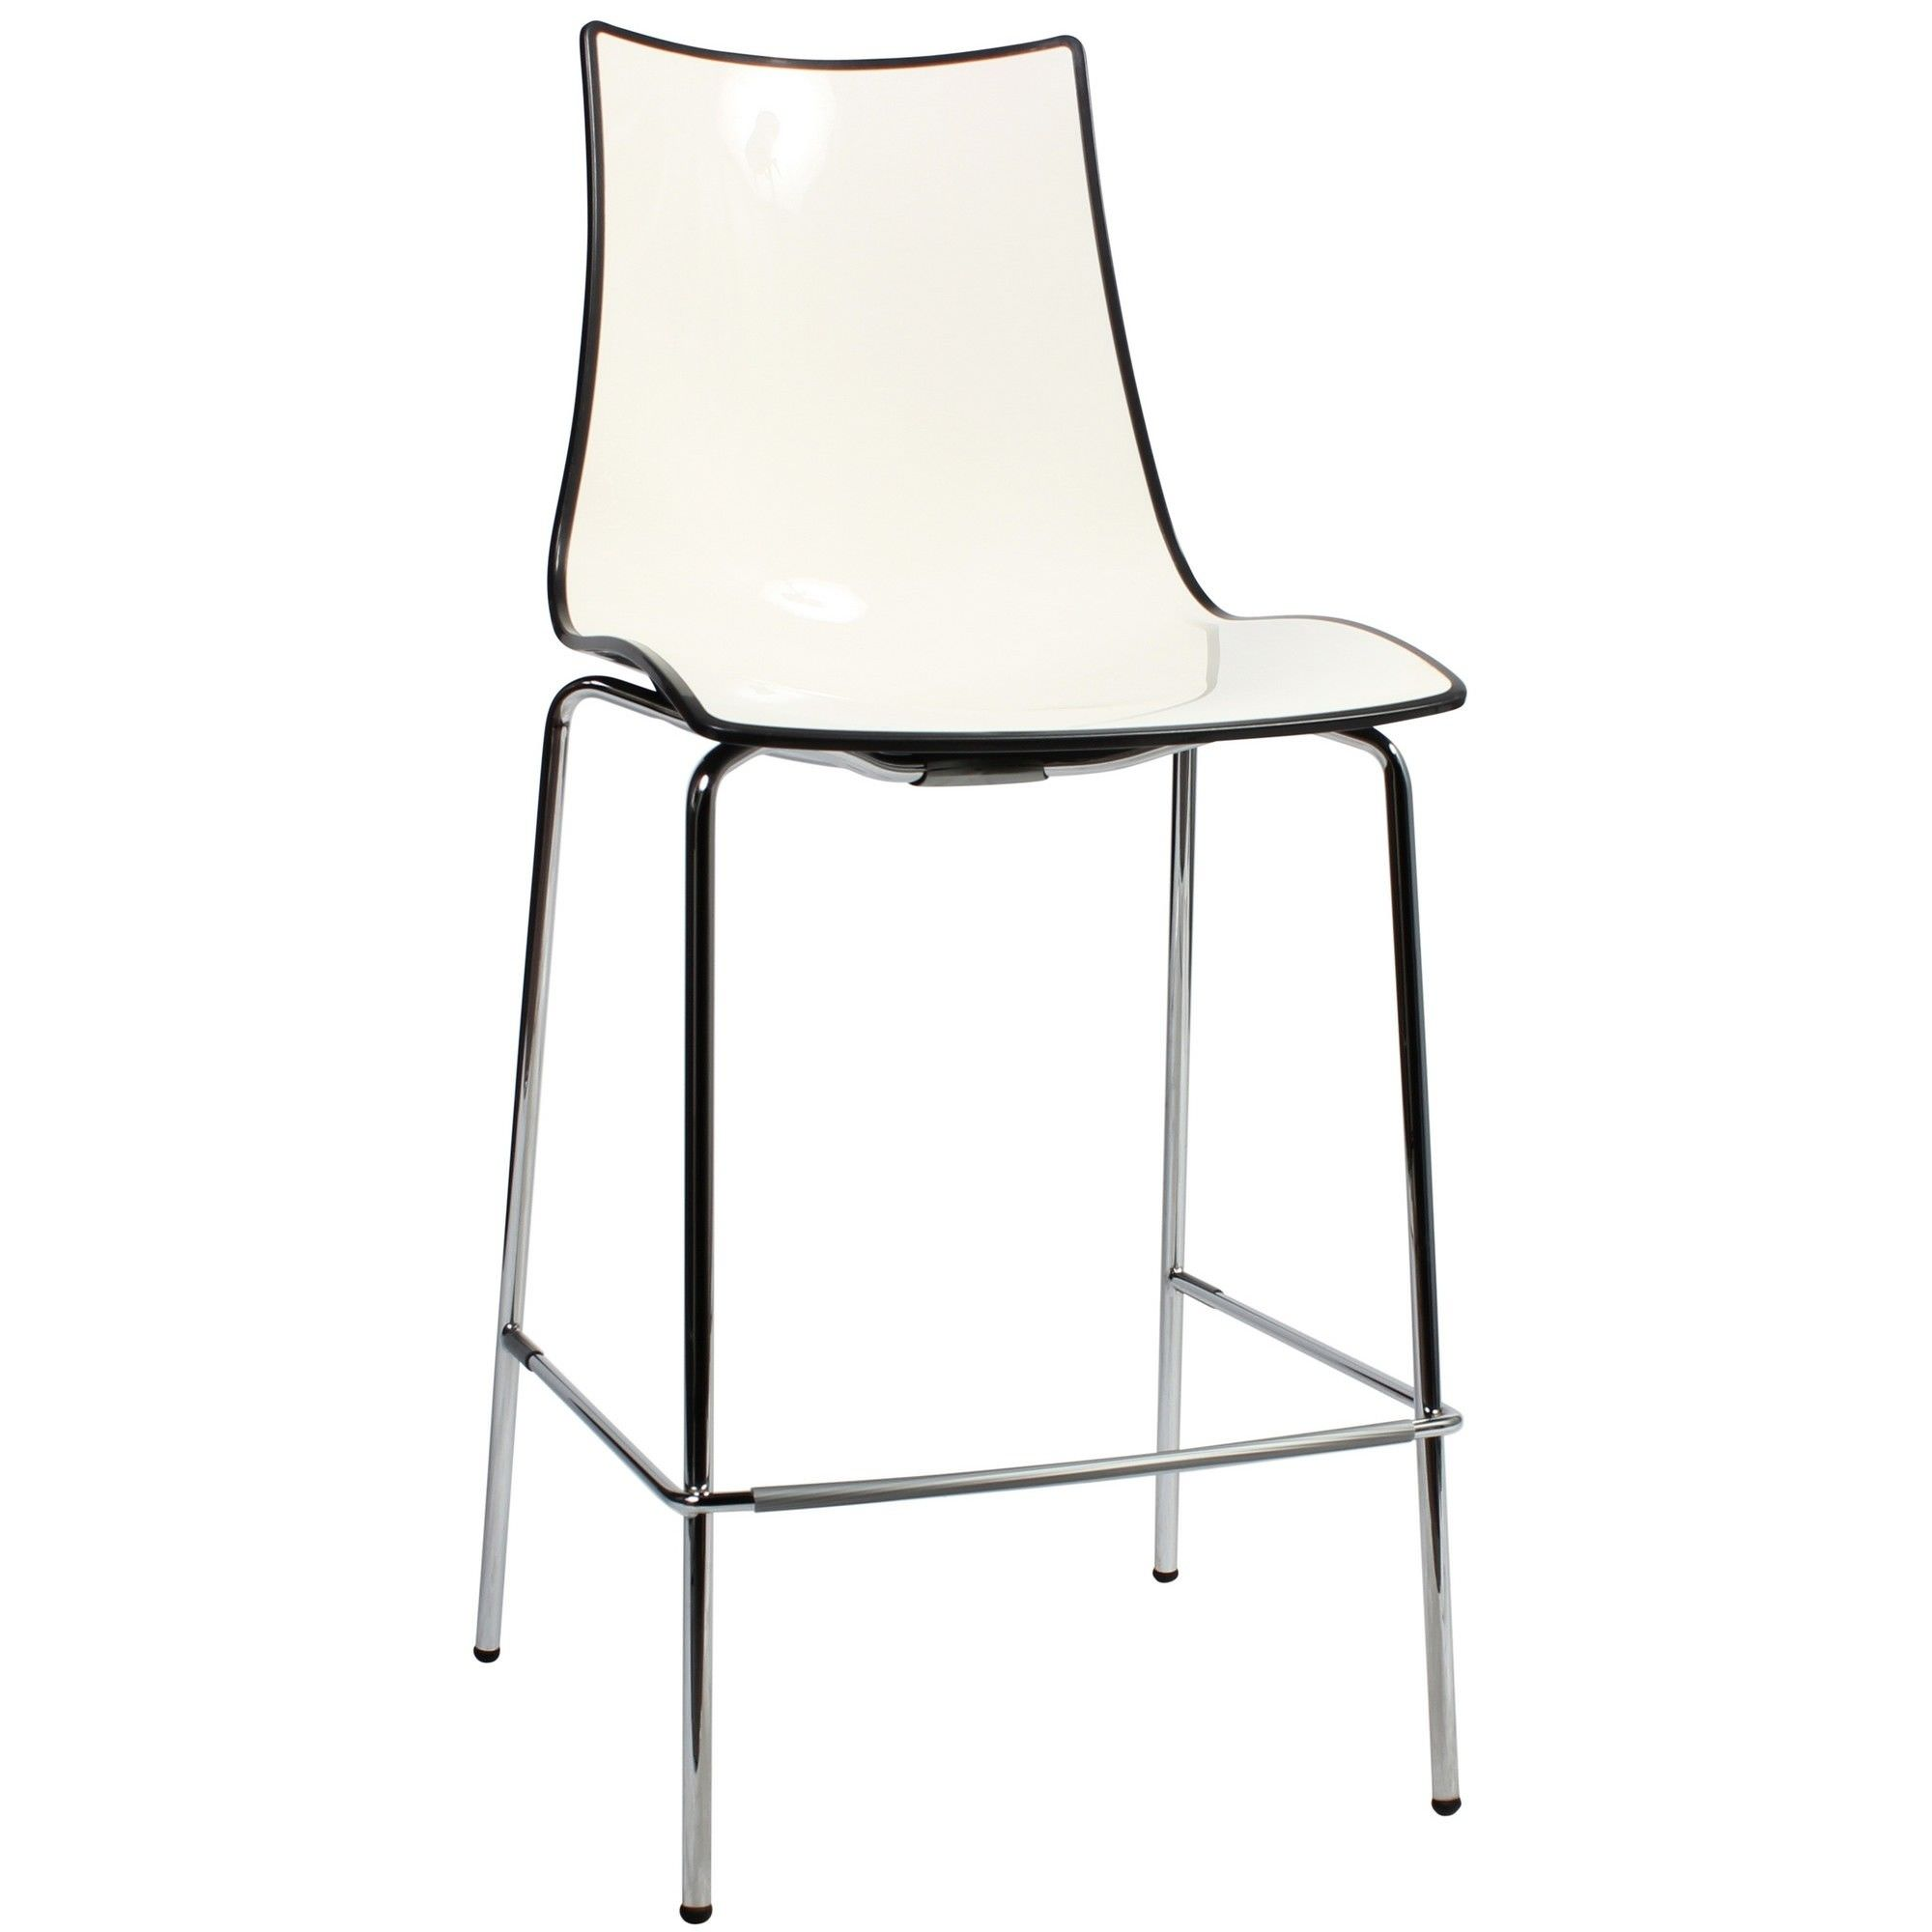 Zebra Bicolore Italian Made Commercial Grade Counter Stool, Metal Leg, Anthracite / Chrome